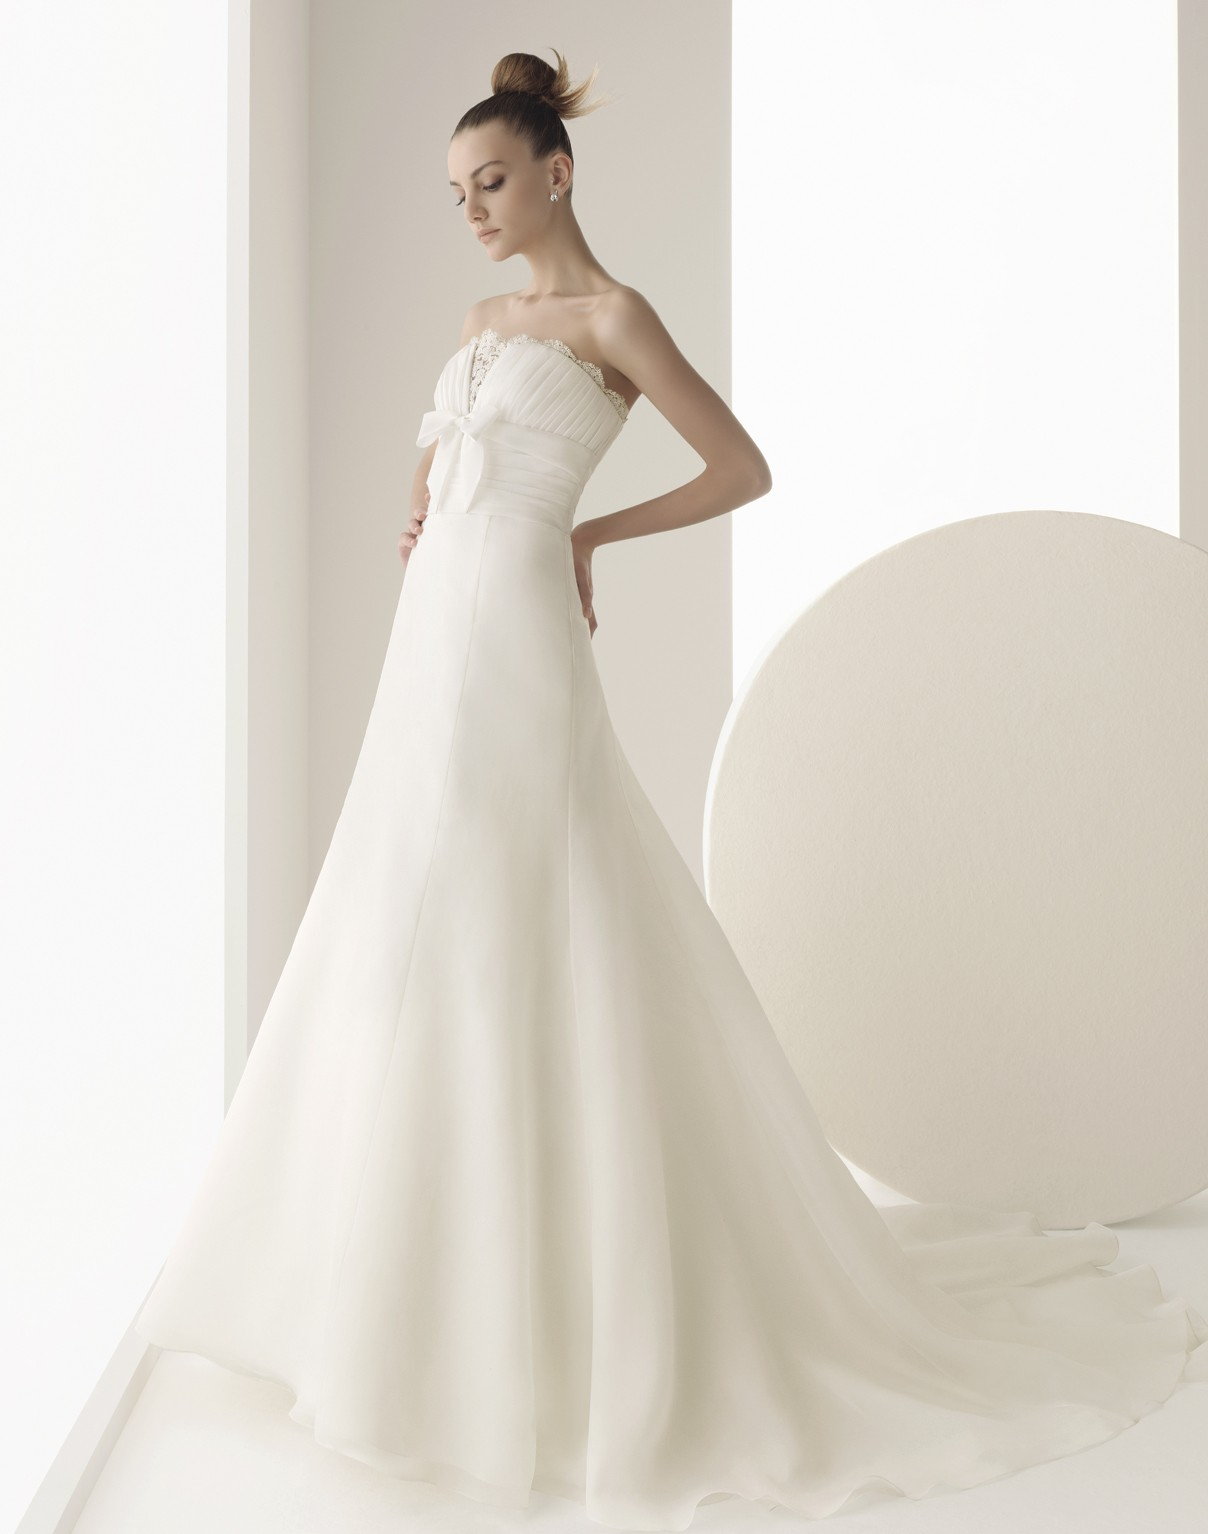 White bridal gown by Peter Trends Bridal